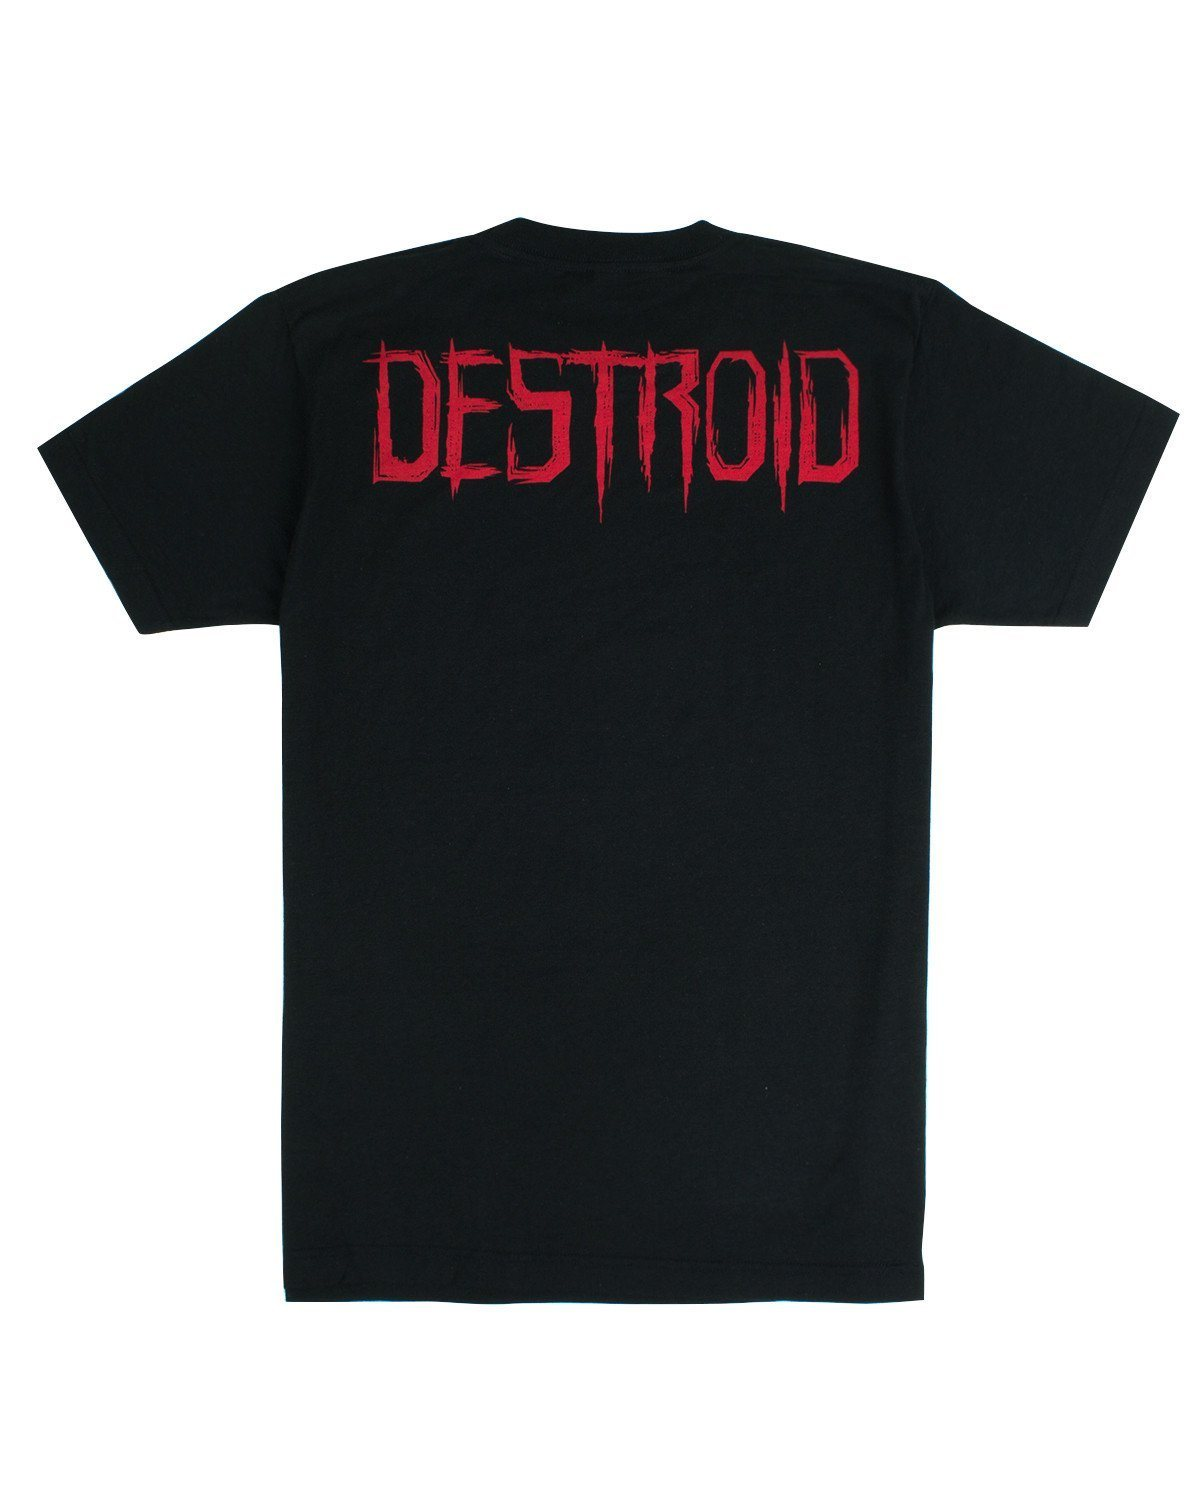 Destroid Ship Unisex T-Shirt